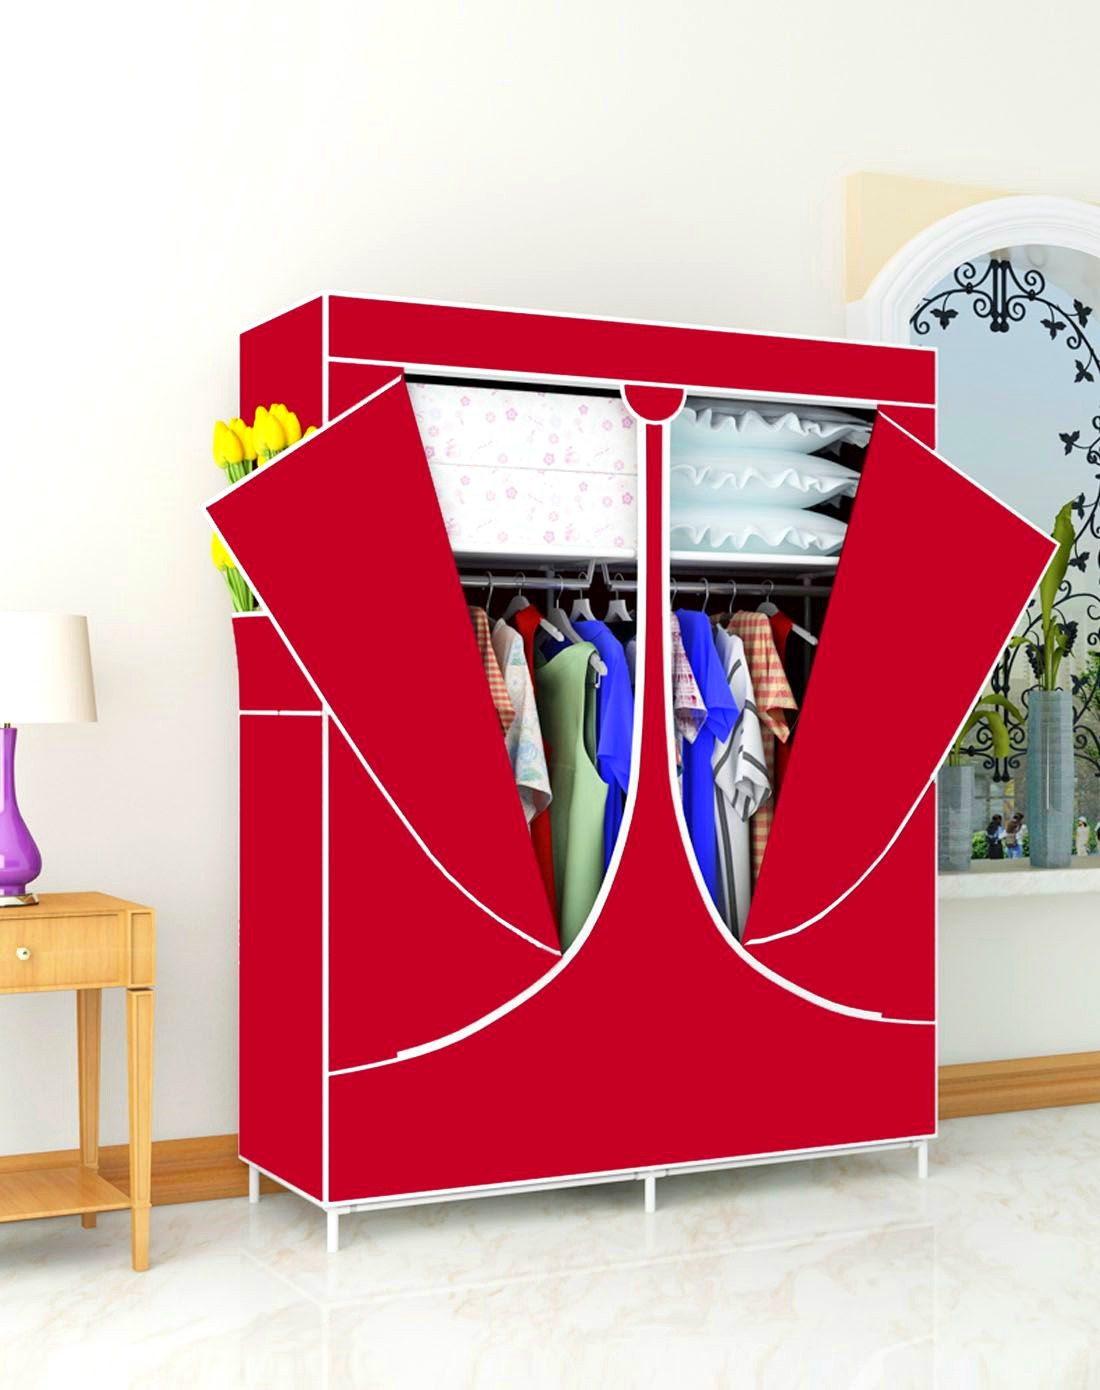 Simplicity Steel Tube Household Cloth Wardrobe Red Dustproof Students Dormitory Economical Wardrobe Oxford Cloth A Generation Of